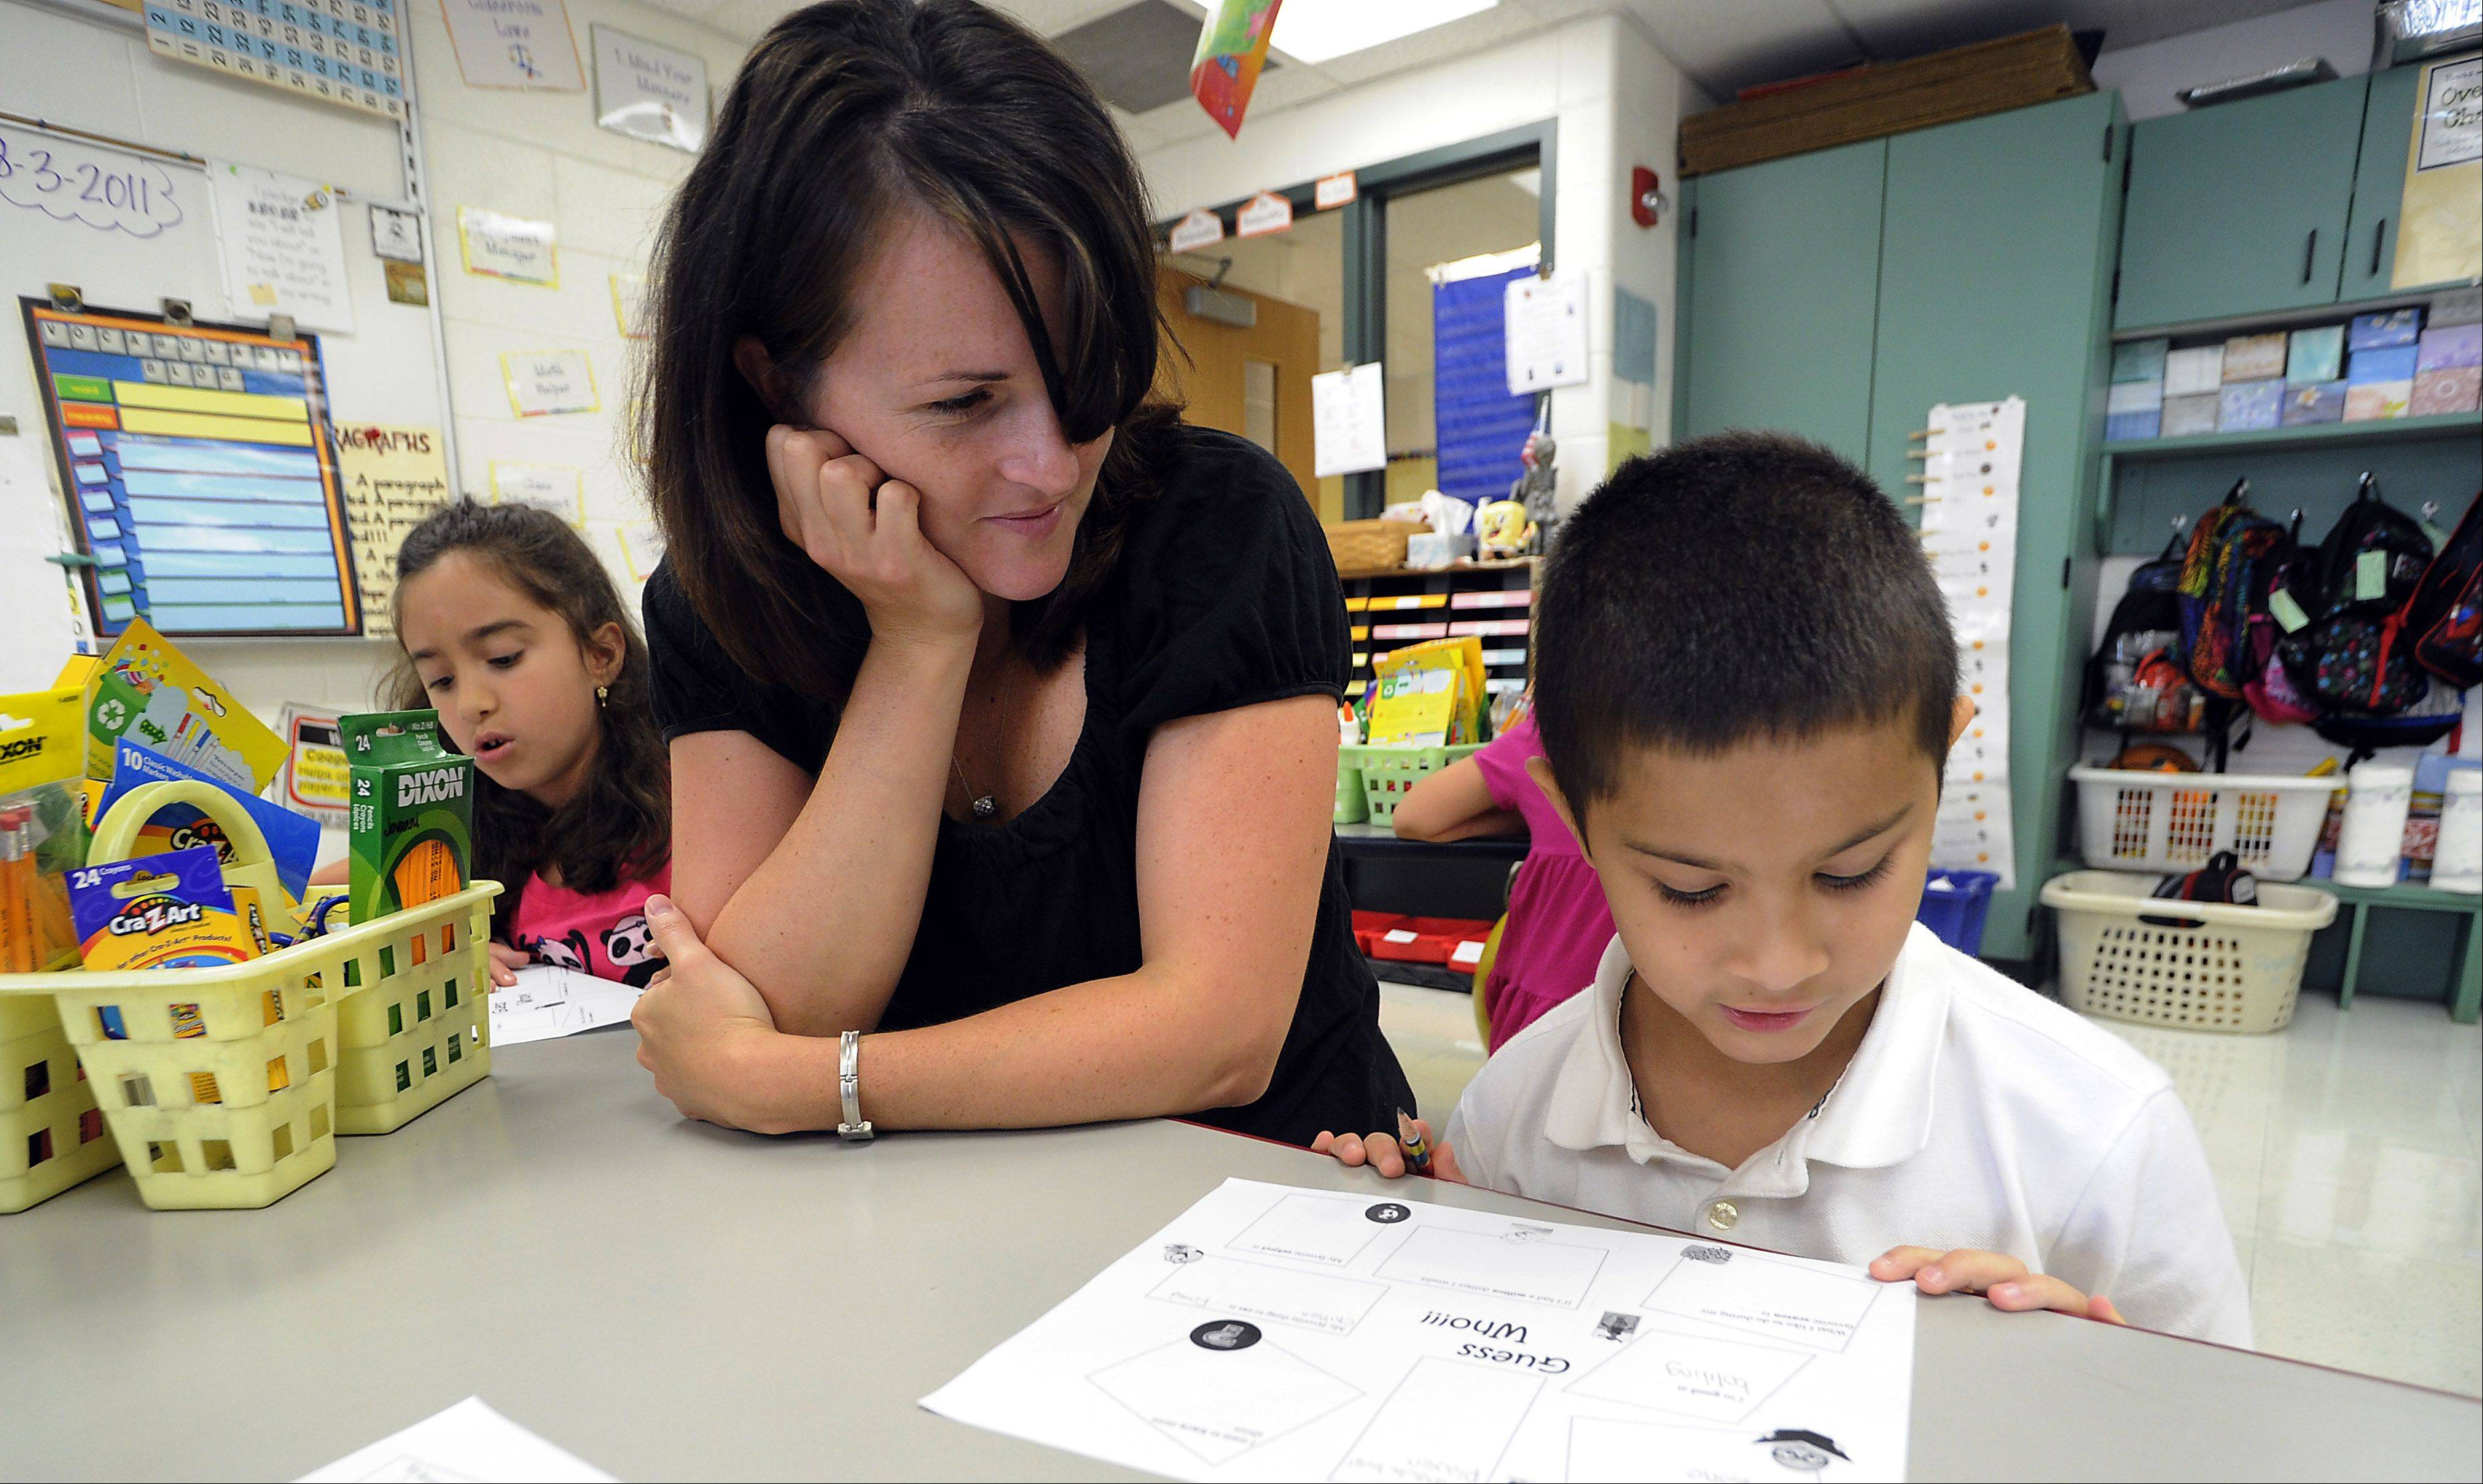 Teacher Katie Rowley works with student Jovanni Ivel, 7, of Elk Grove Village in his 3rd grade classroom at the Ridge Family Center for Learning as part of the open house on Wednesday.